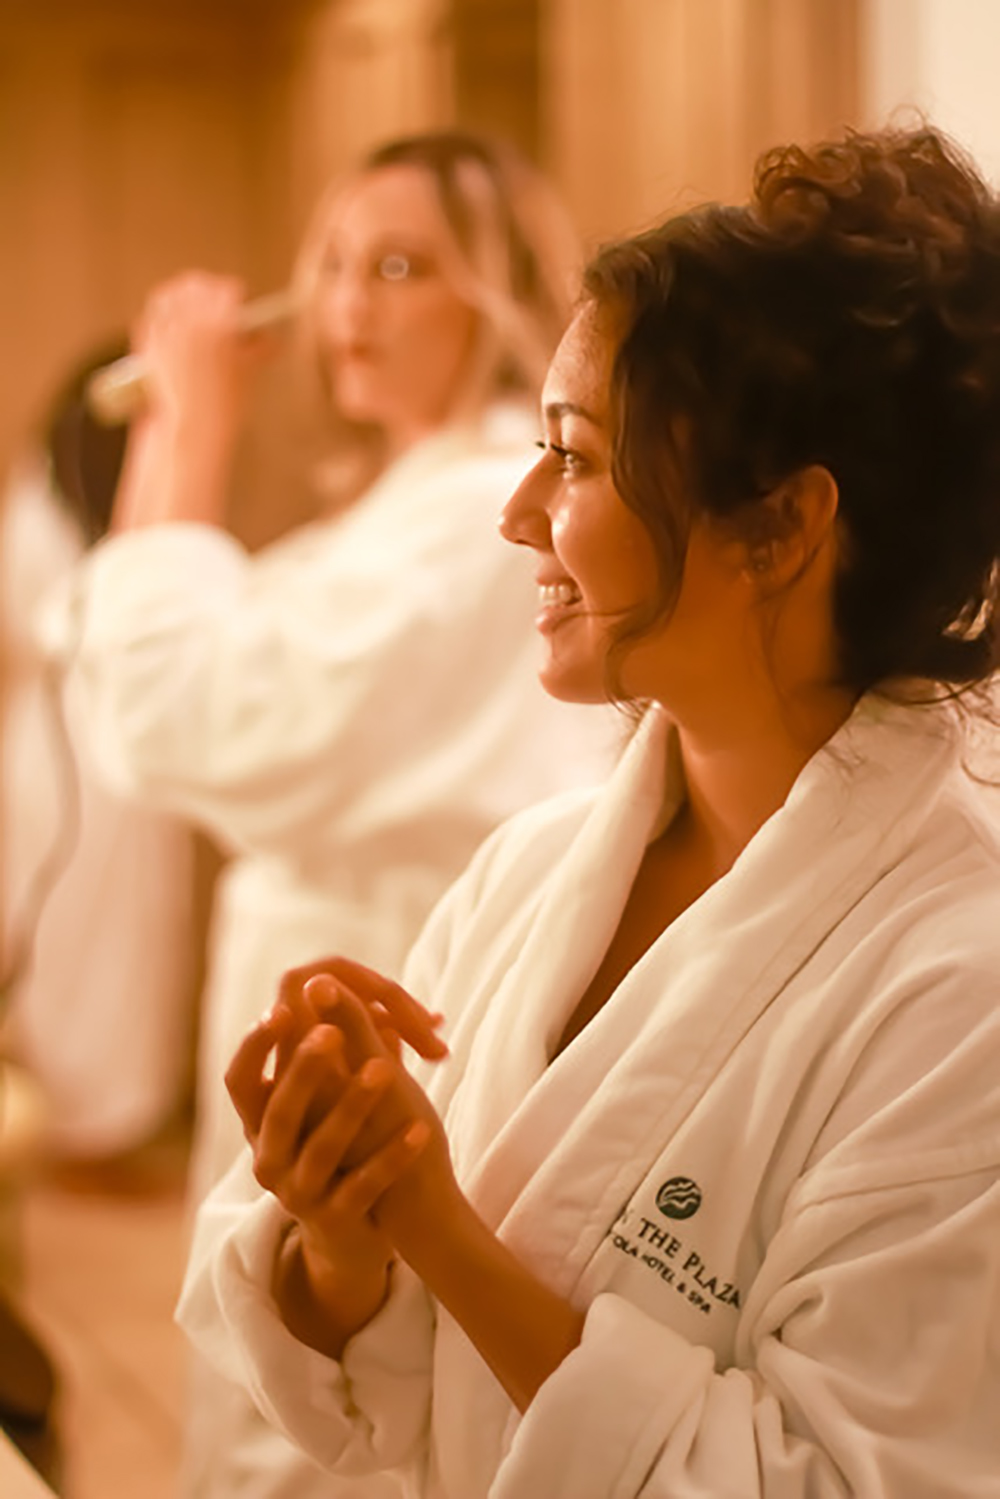 Guests relax in comfortable robes during their spa visit.